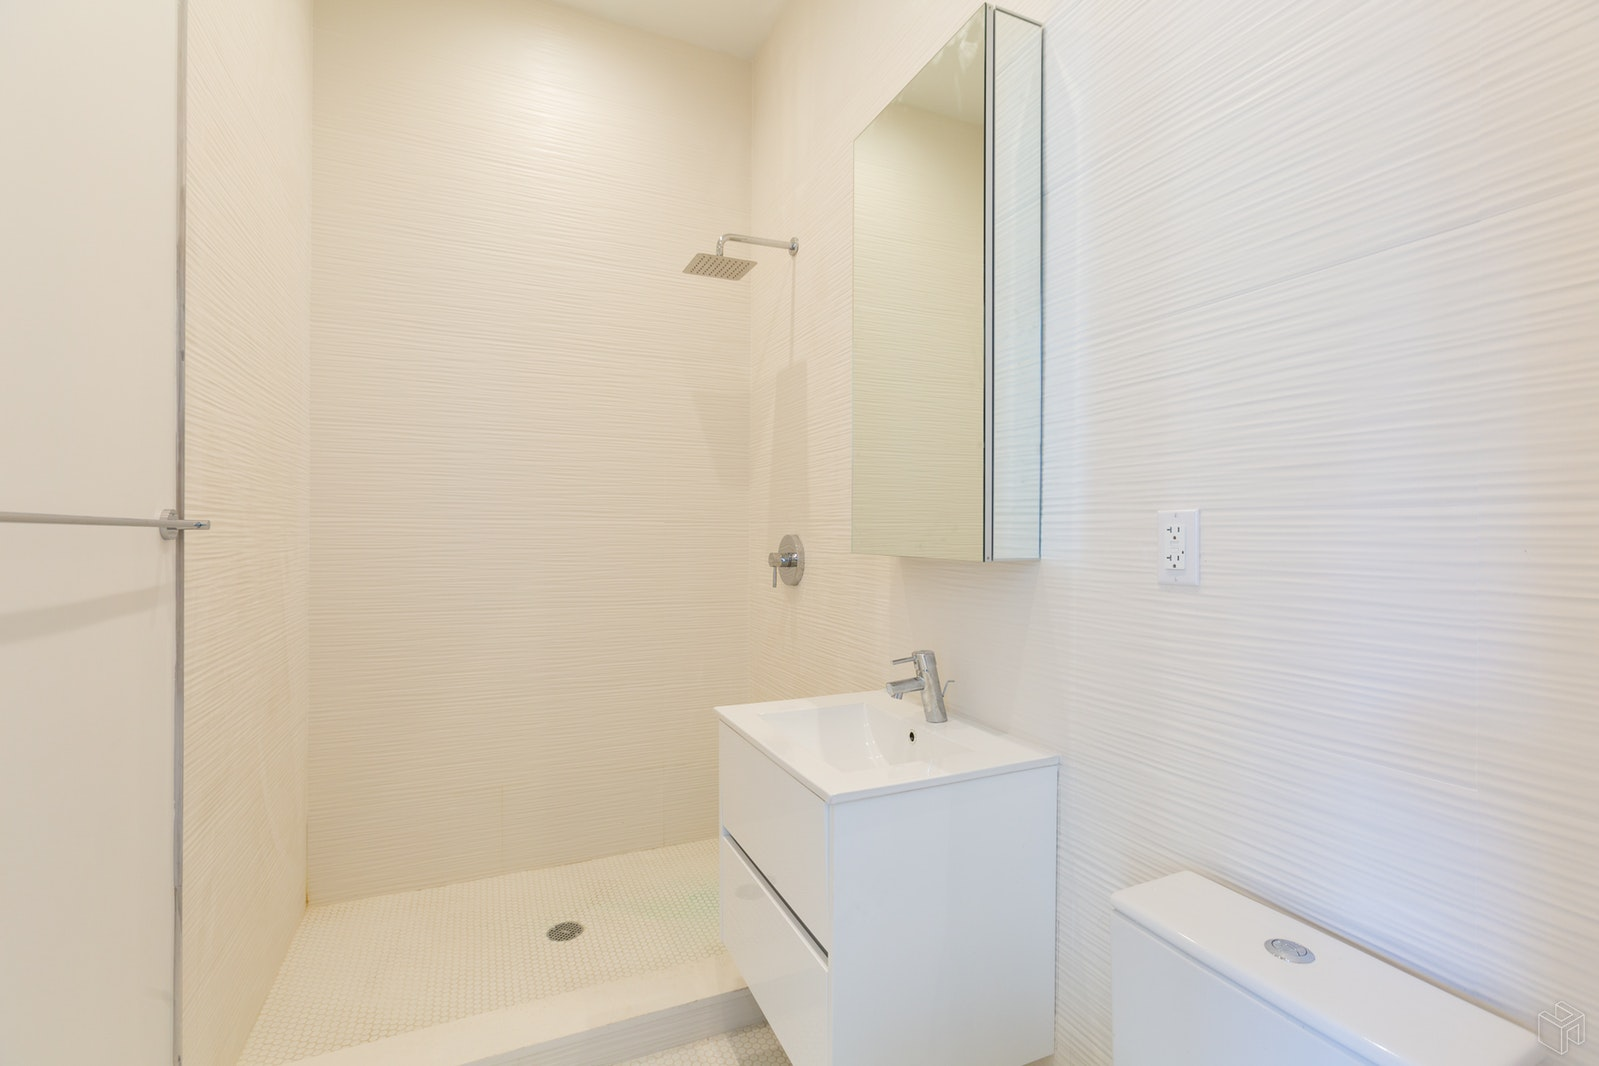 111 WEST 130TH STREET GF, Harlem, $1,900, Web #: 19422026